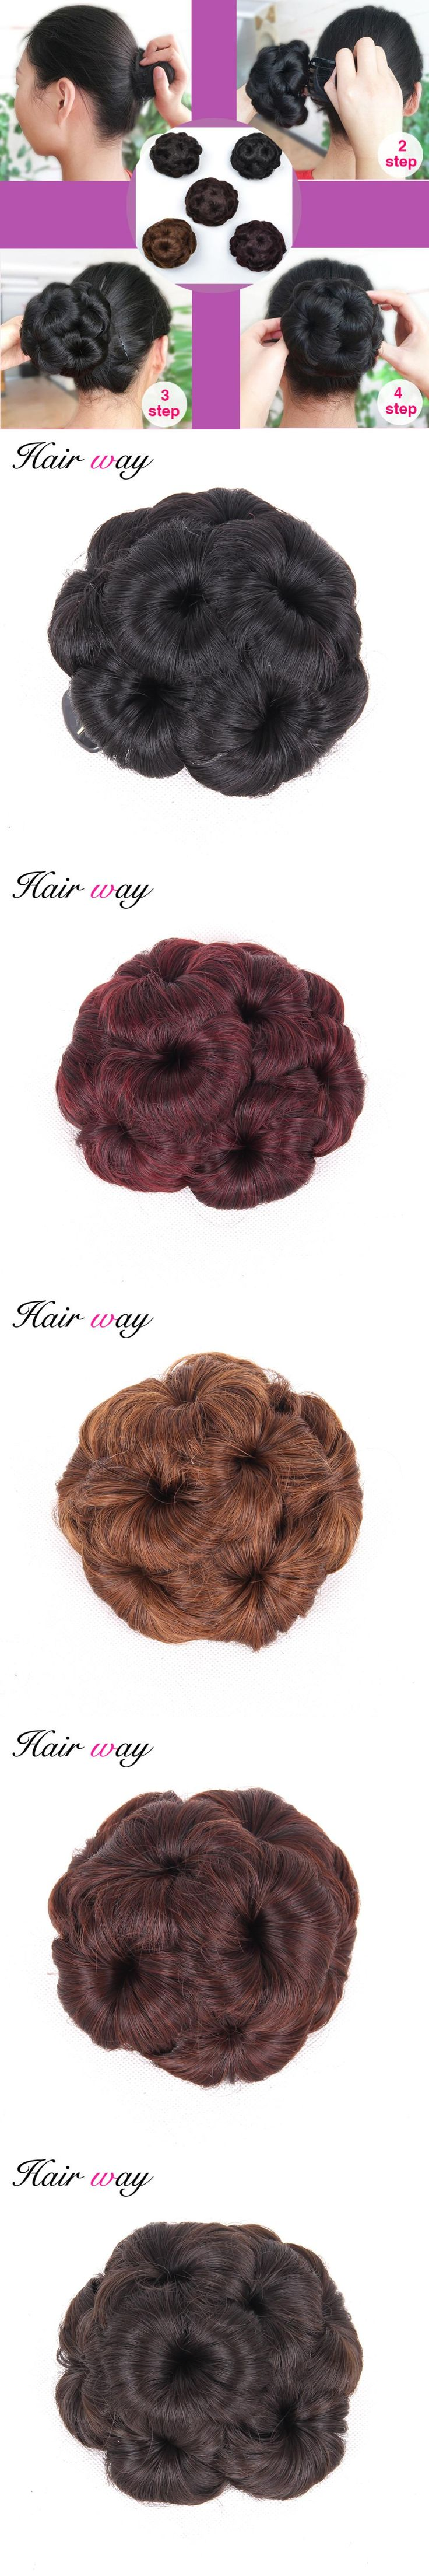 Hair Way 9 Hair Flowers Claw Chignon 6 Colors Hair Bun Accessories On Ponytail Hair Piece With Heat Resistant Synthetic Fiber